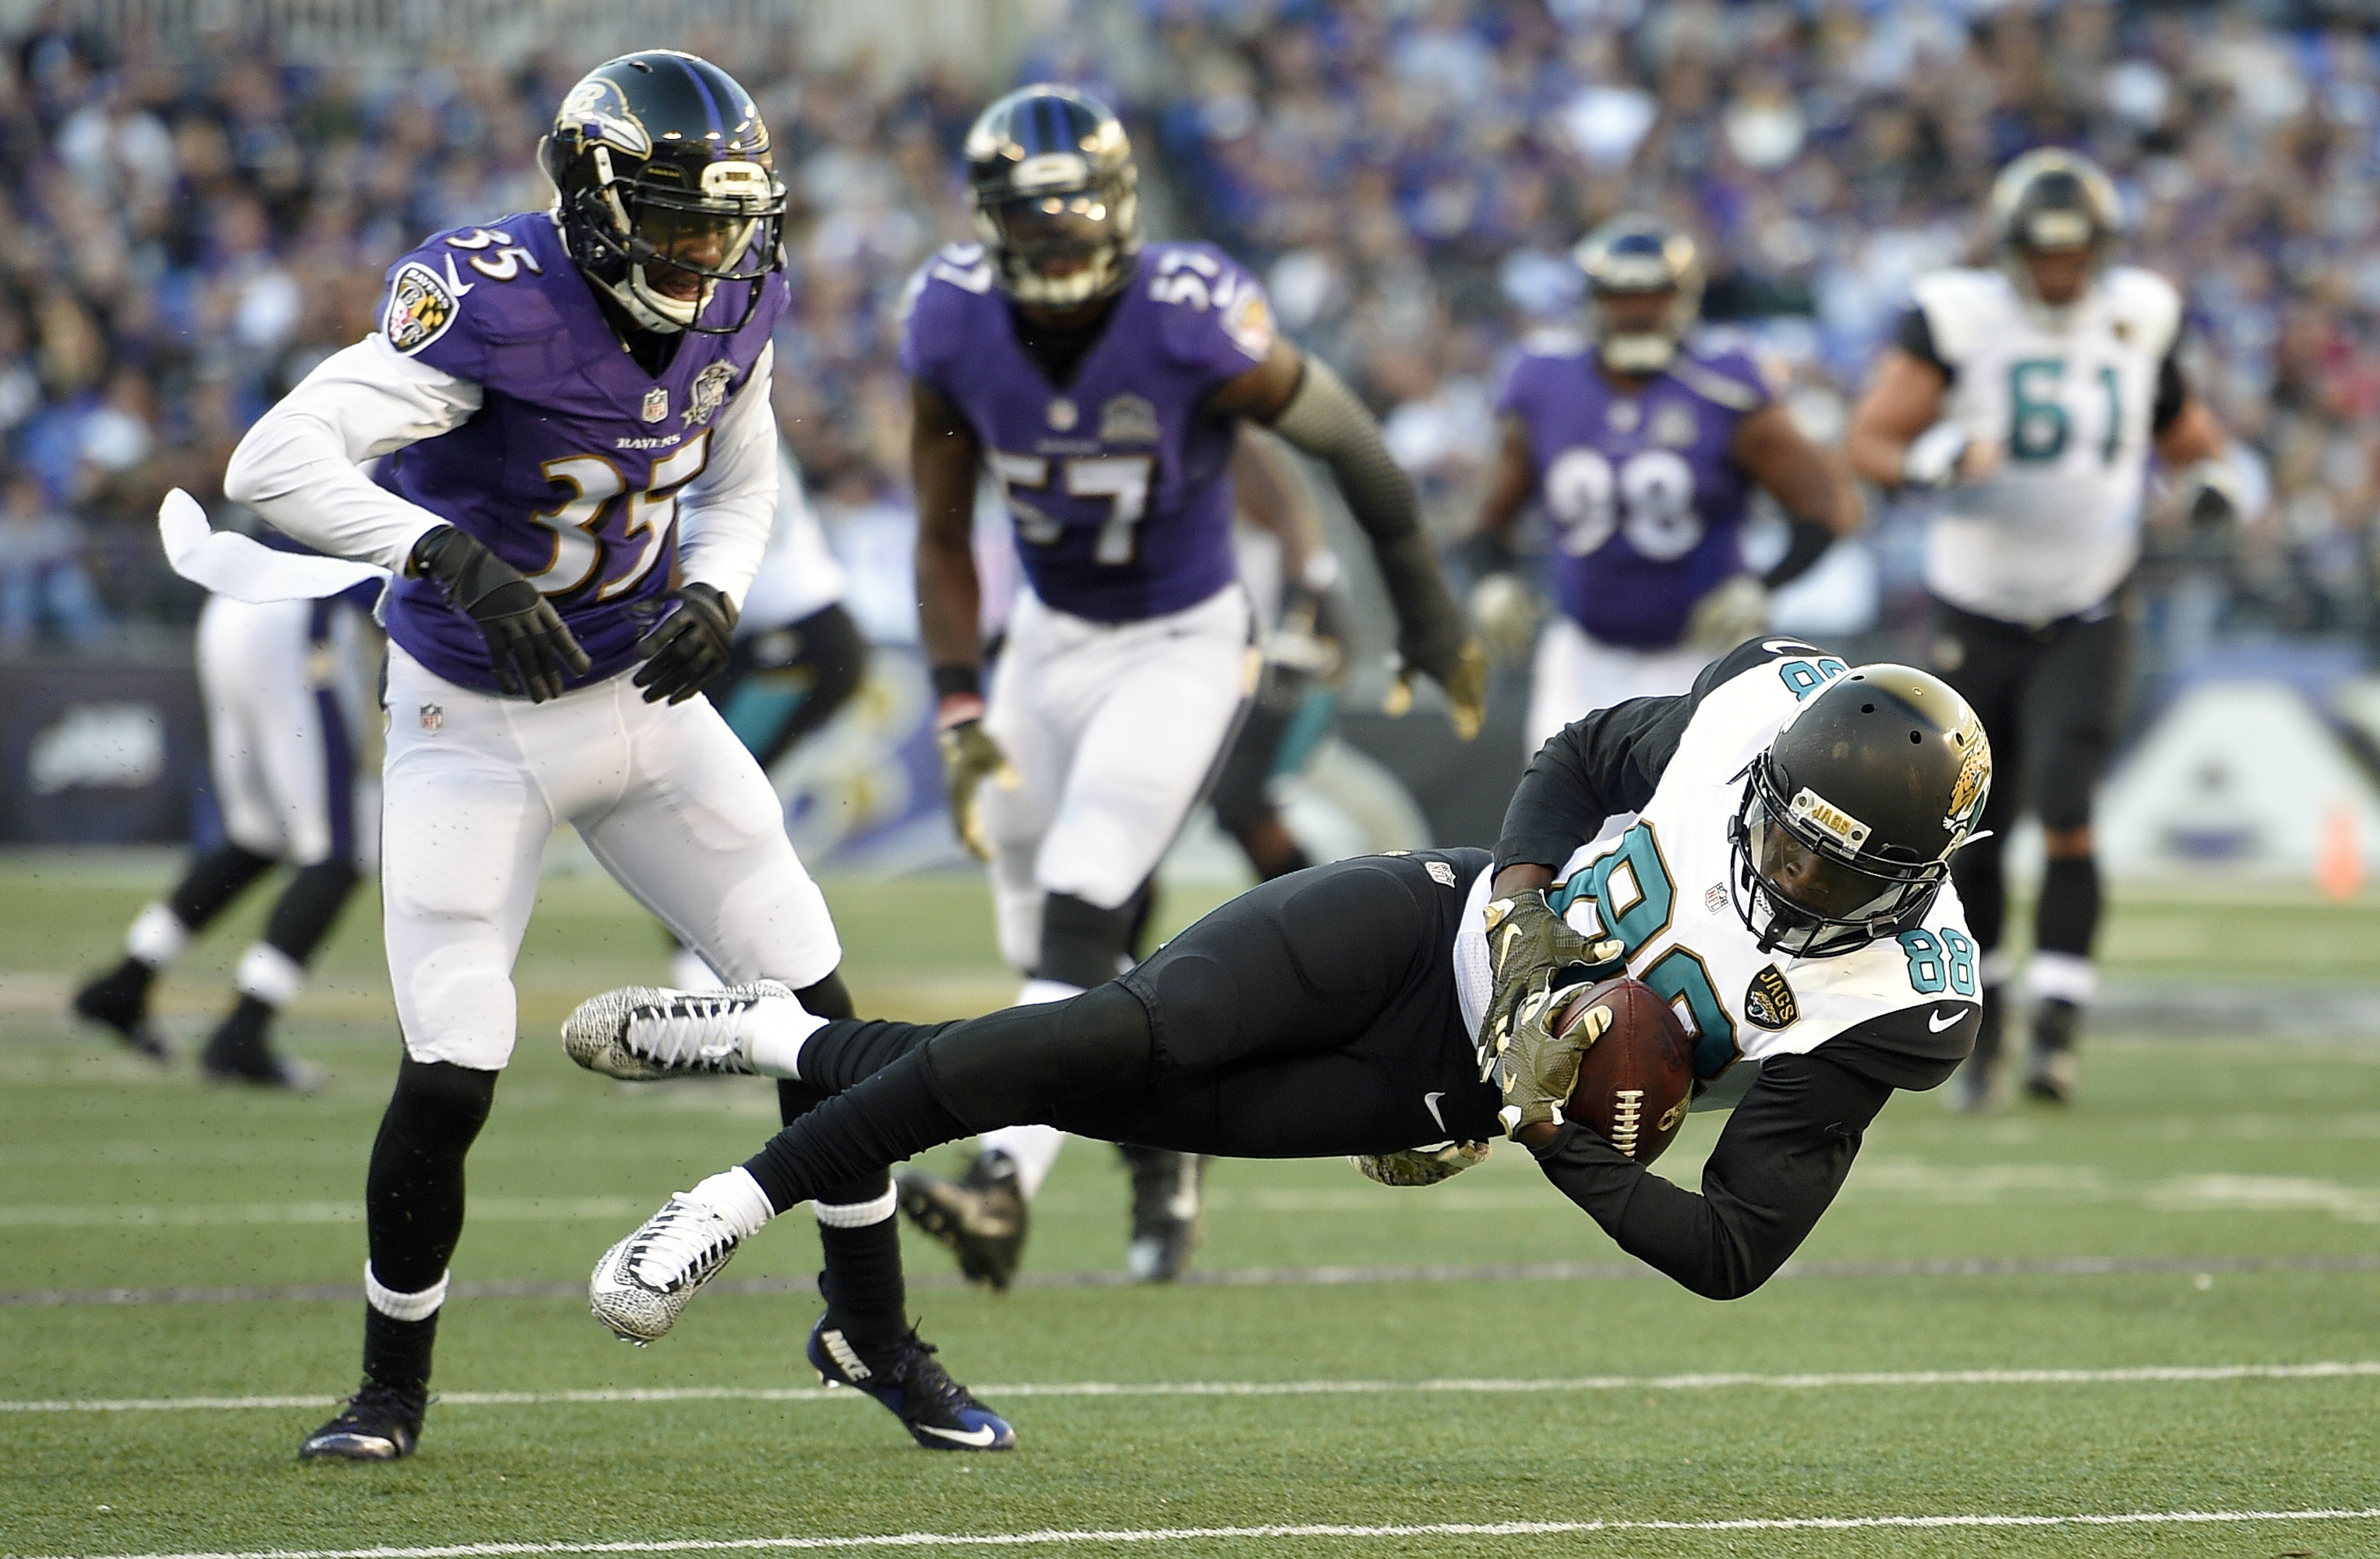 Jacksonville Jaguars wide receiver Allen Hurns, right, makes a catch in front of Baltimore Ravens defensive back Shareece Wright in the second half an NFL football game, Sunday, Nov. 15, 2015, in Baltimore. (AP Photo/Nick Wass)